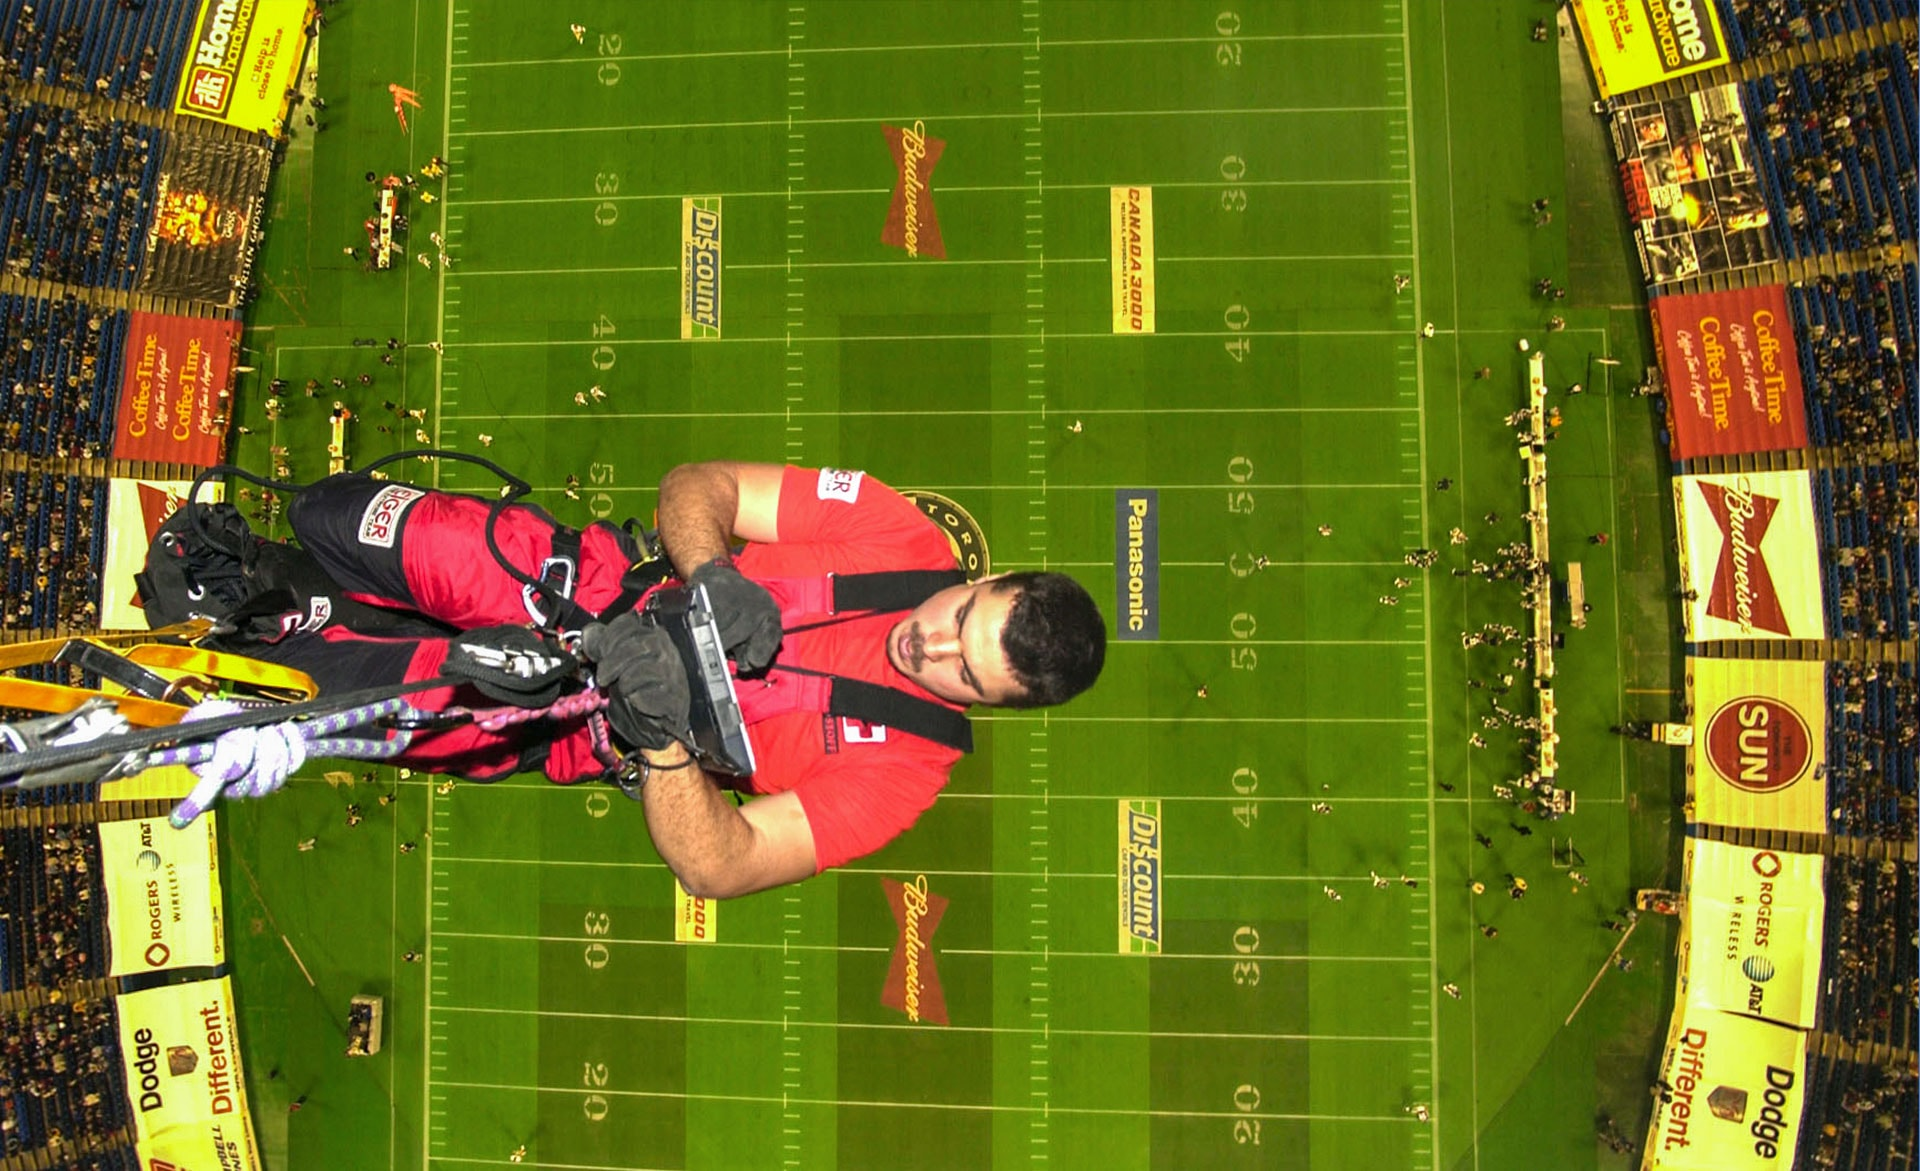 Rappelling in Skydome